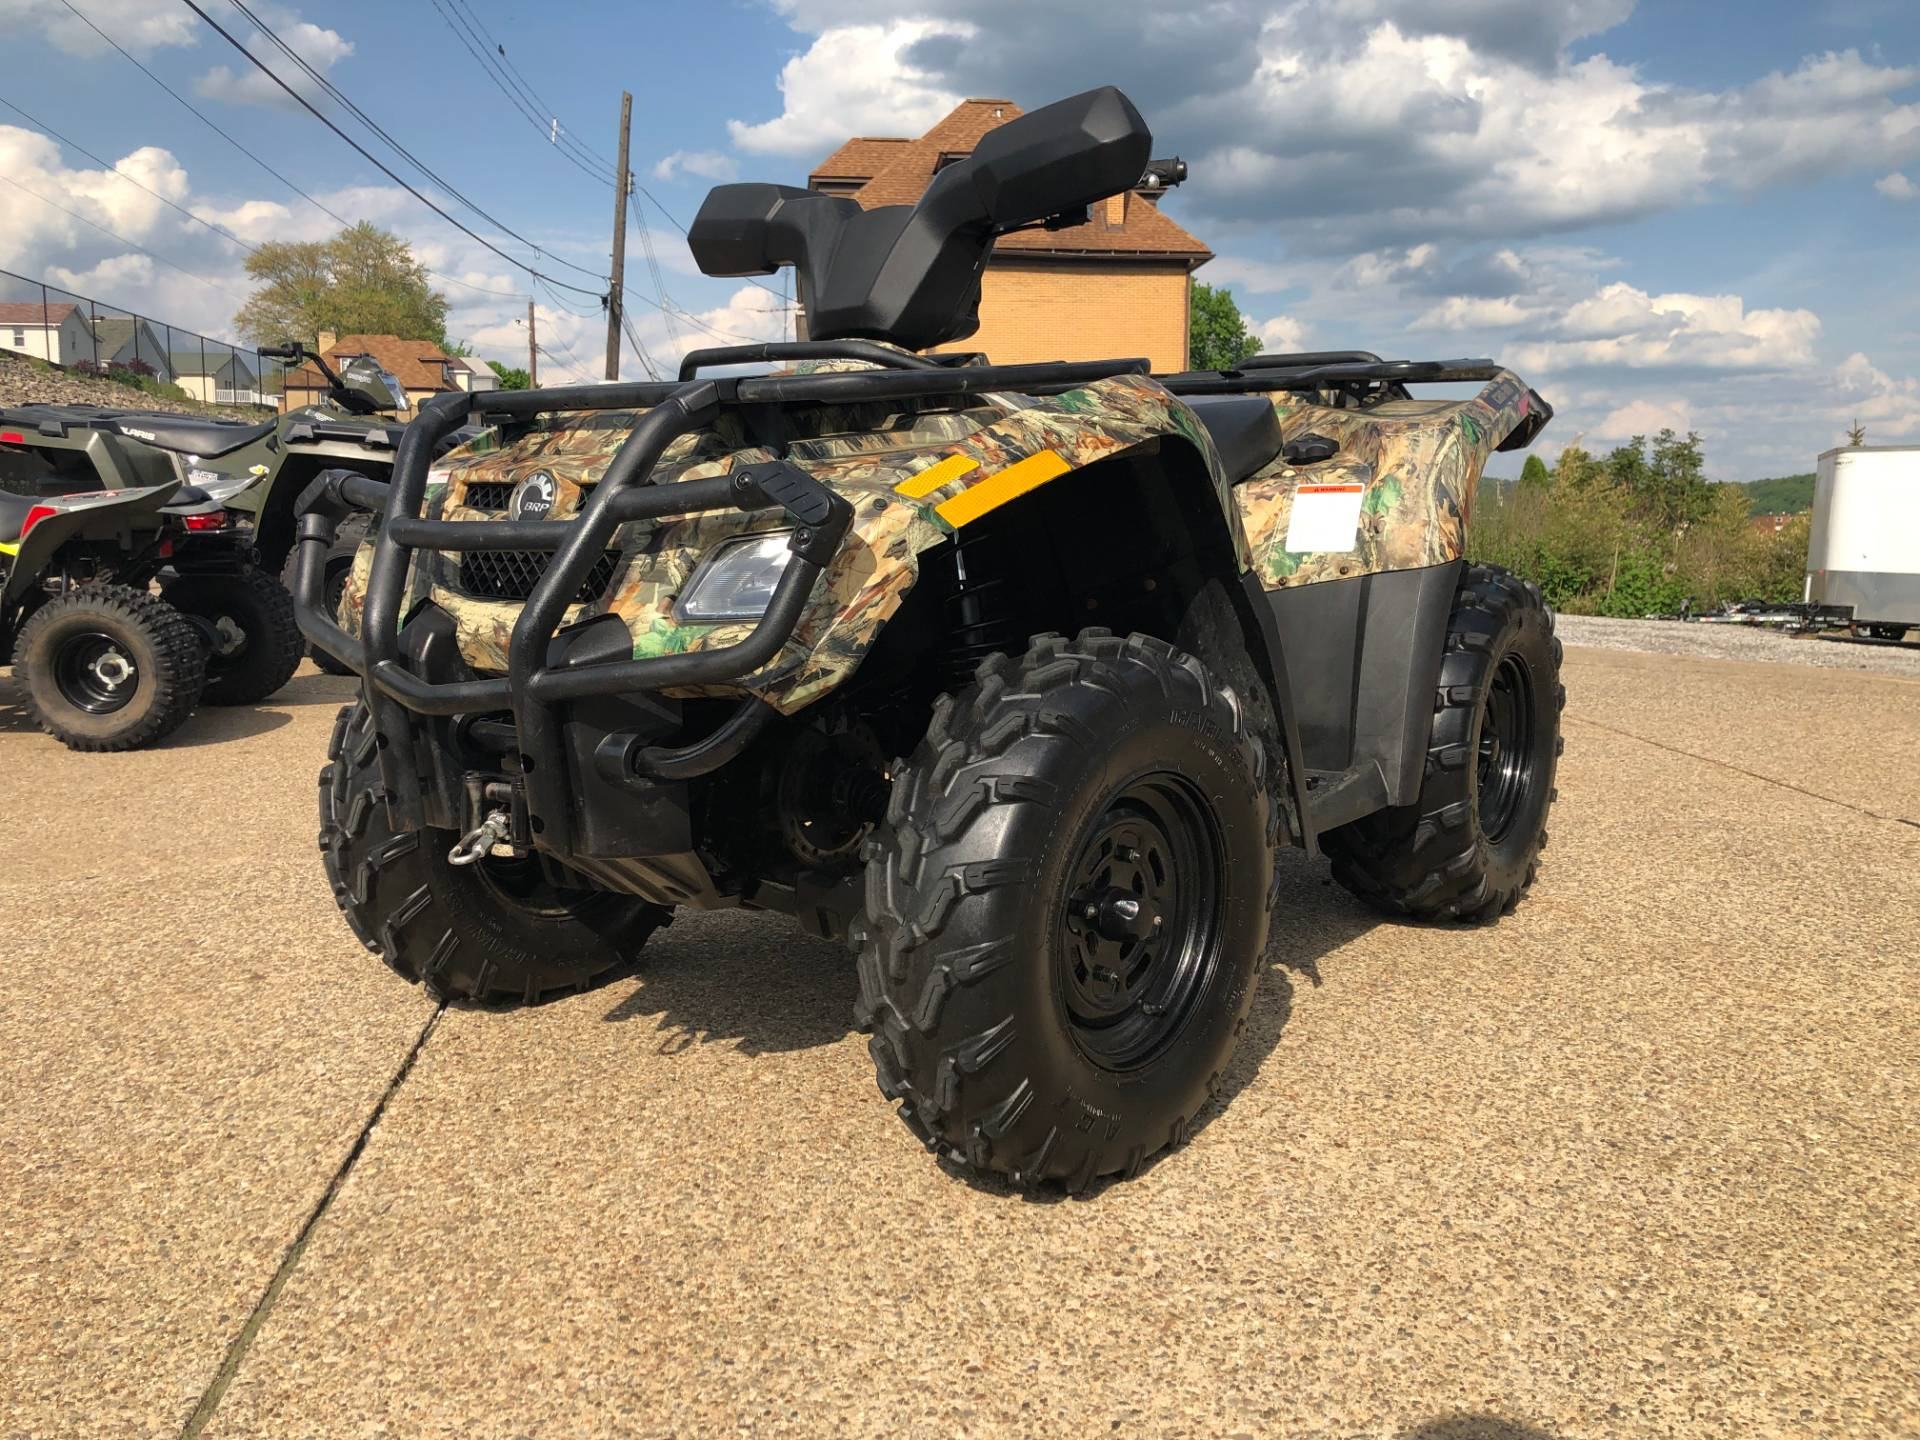 2007 Can-Am Outlander™ XT 400 H.O. in Tarentum, Pennsylvania - Photo 1